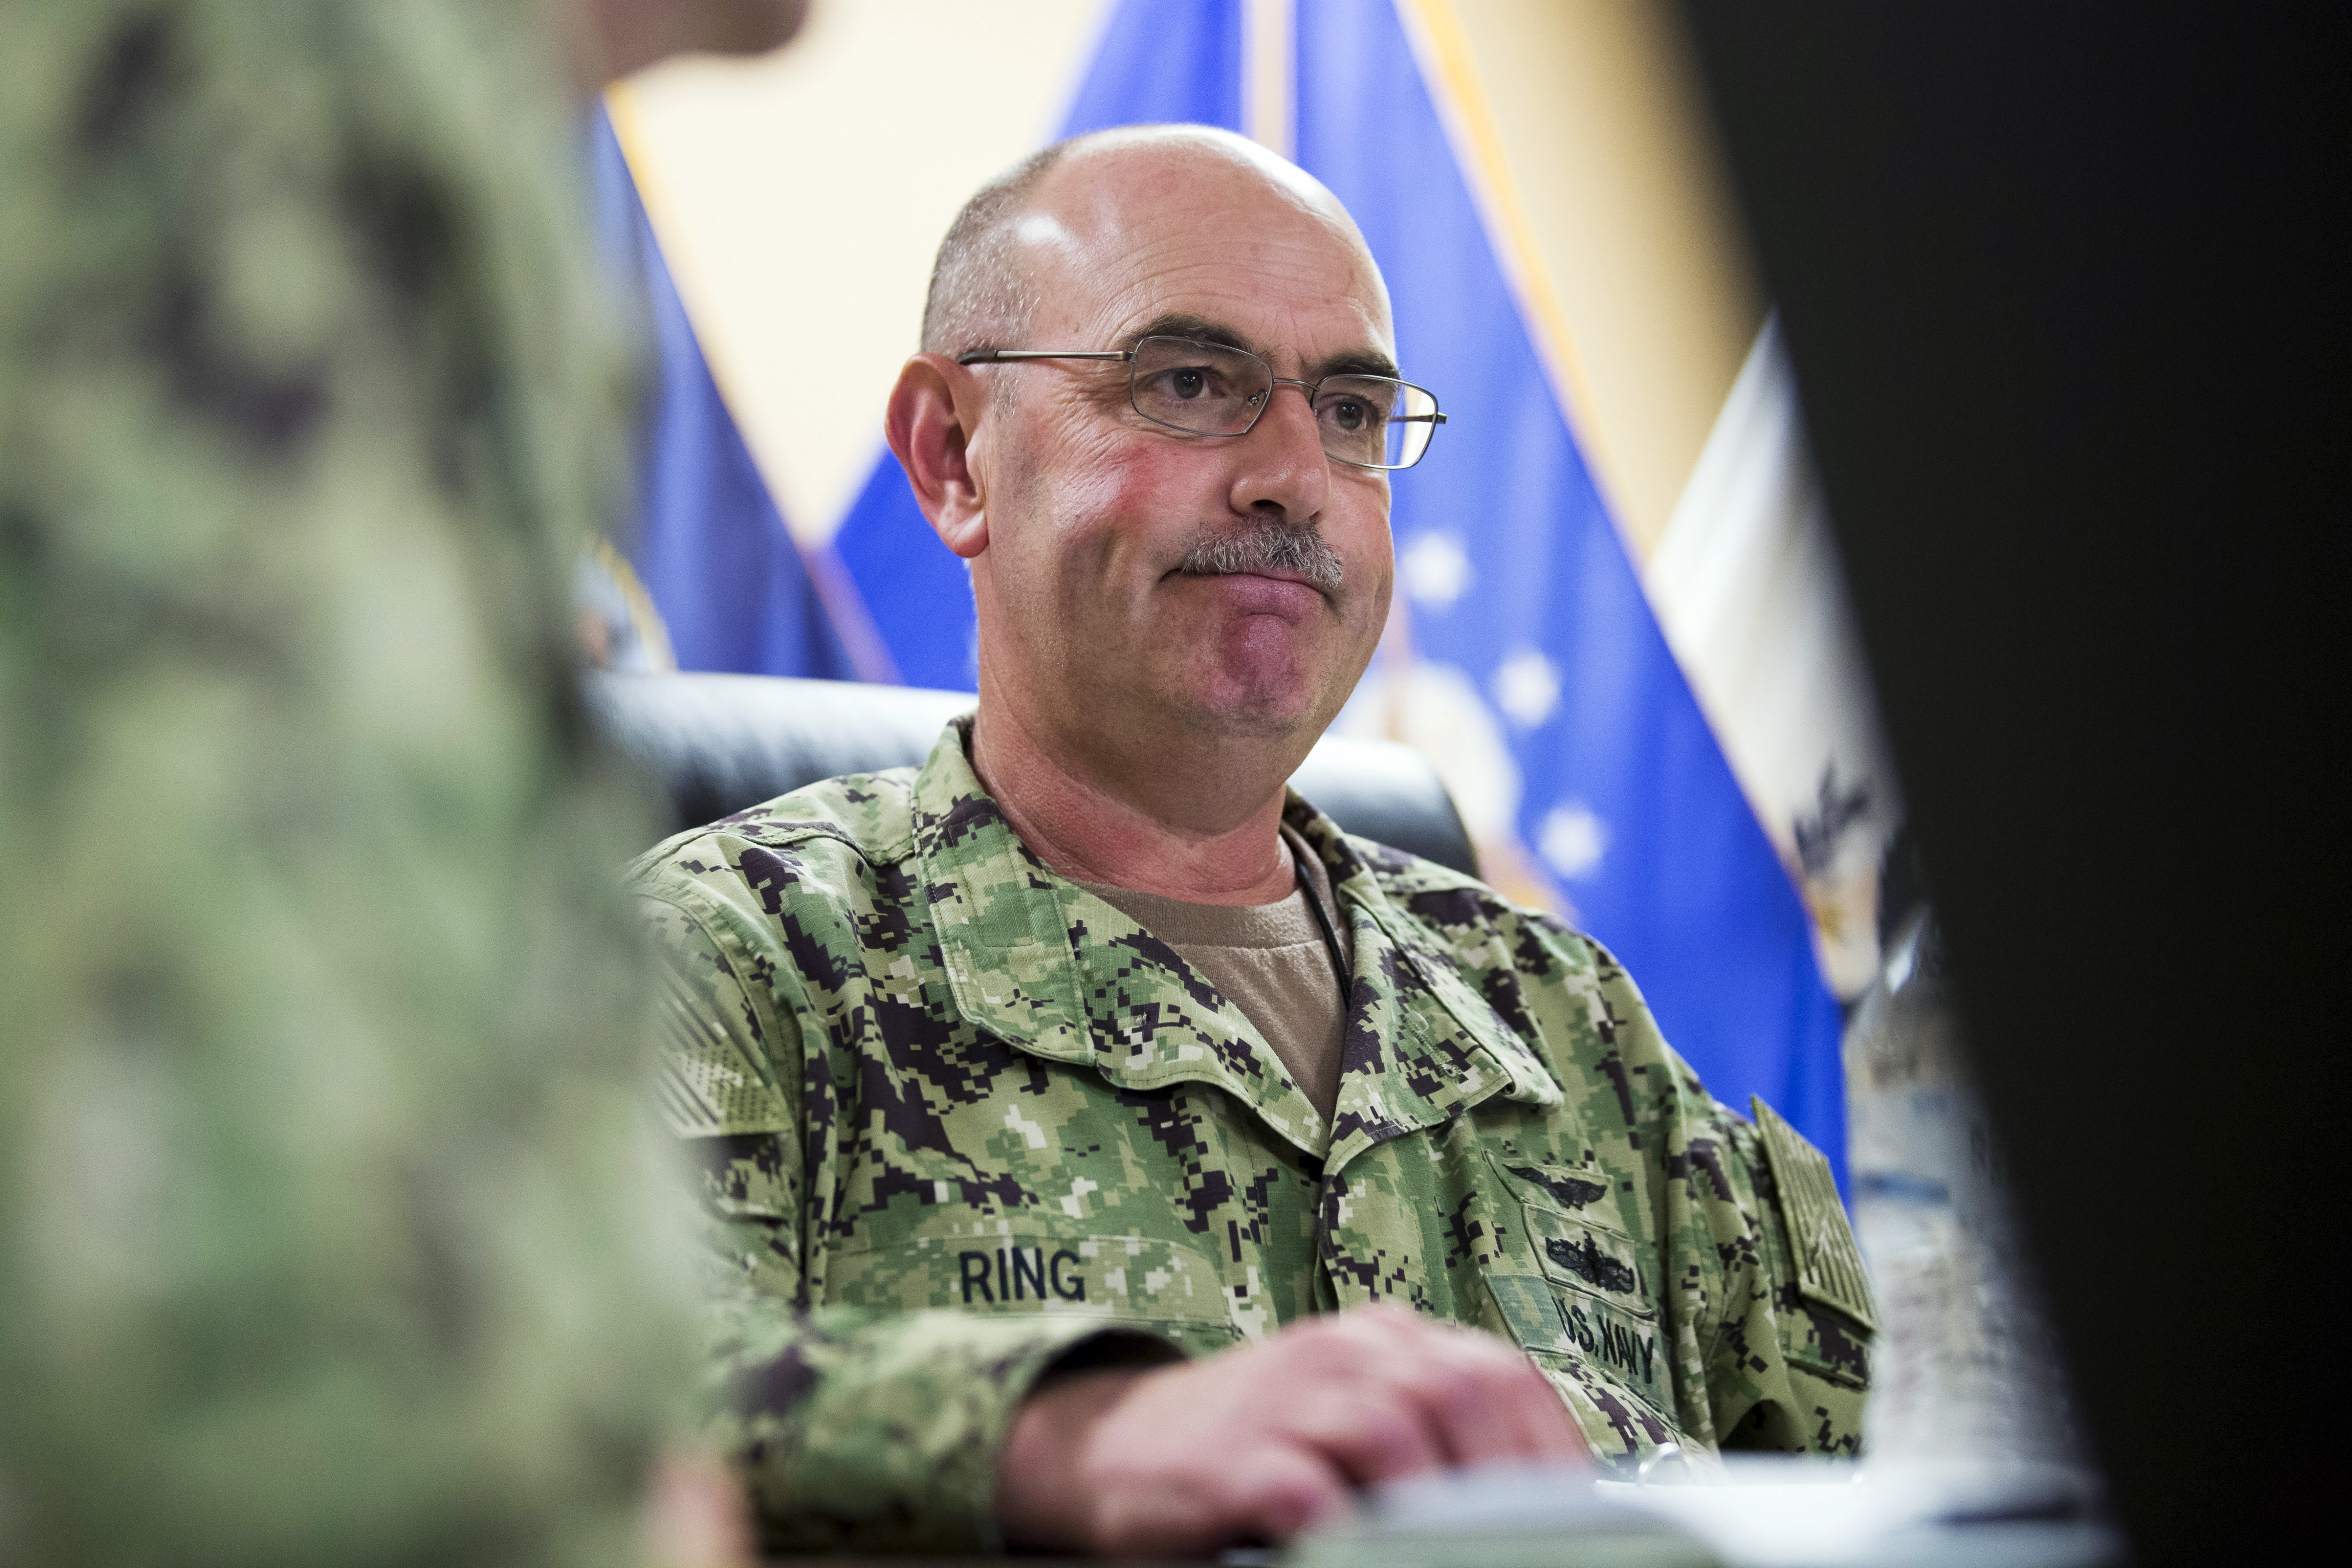 Navy Rear Adm. John Ring was relieved of duty Saturday.